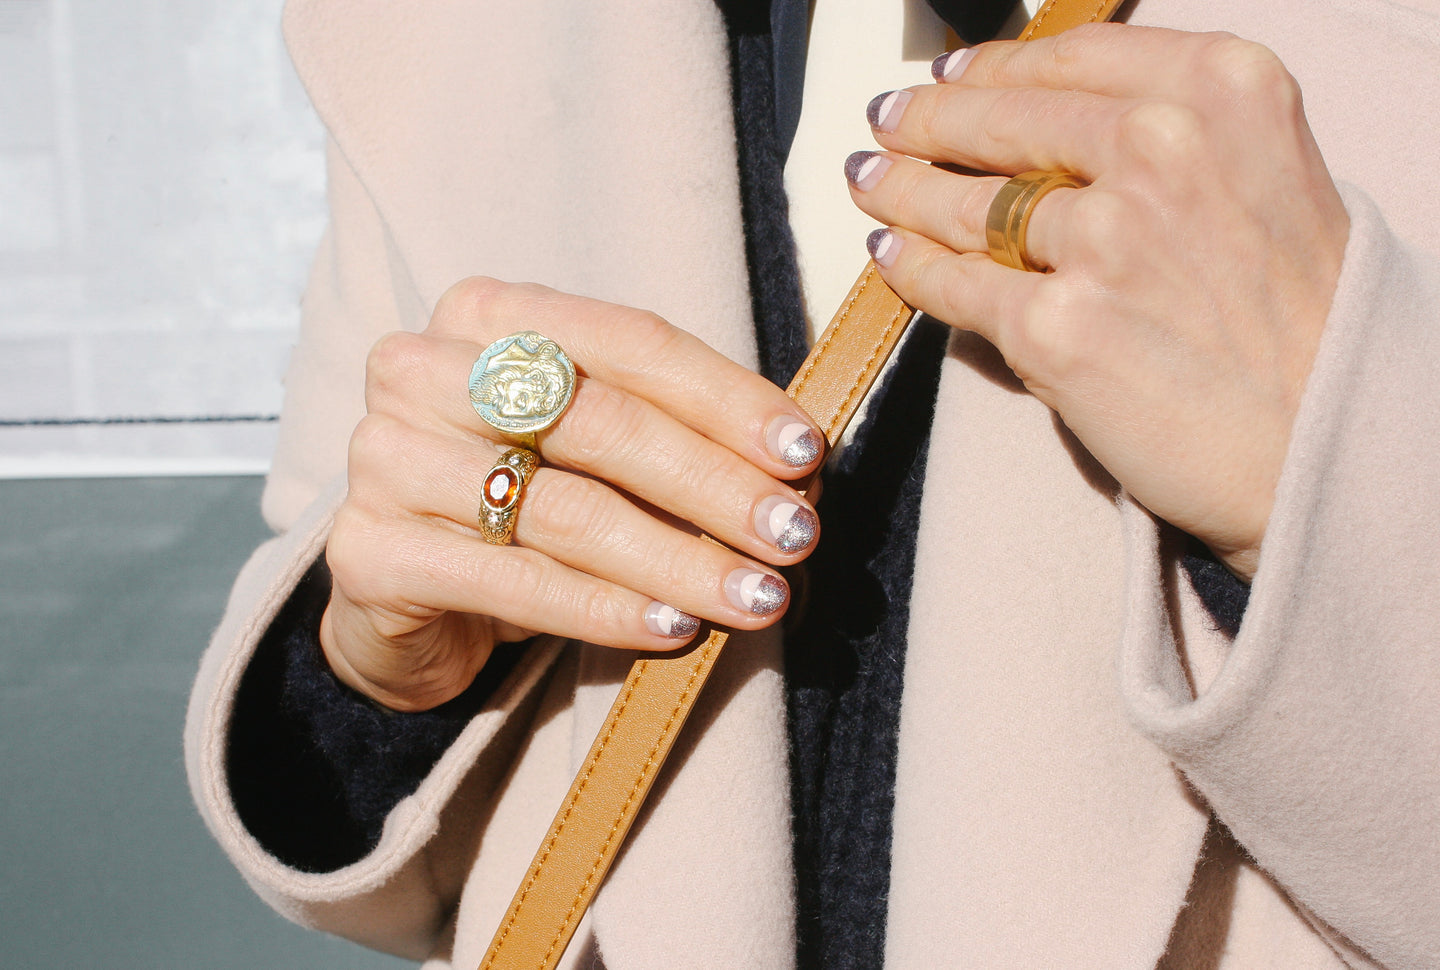 Nails of New York: Indre Rockefeller